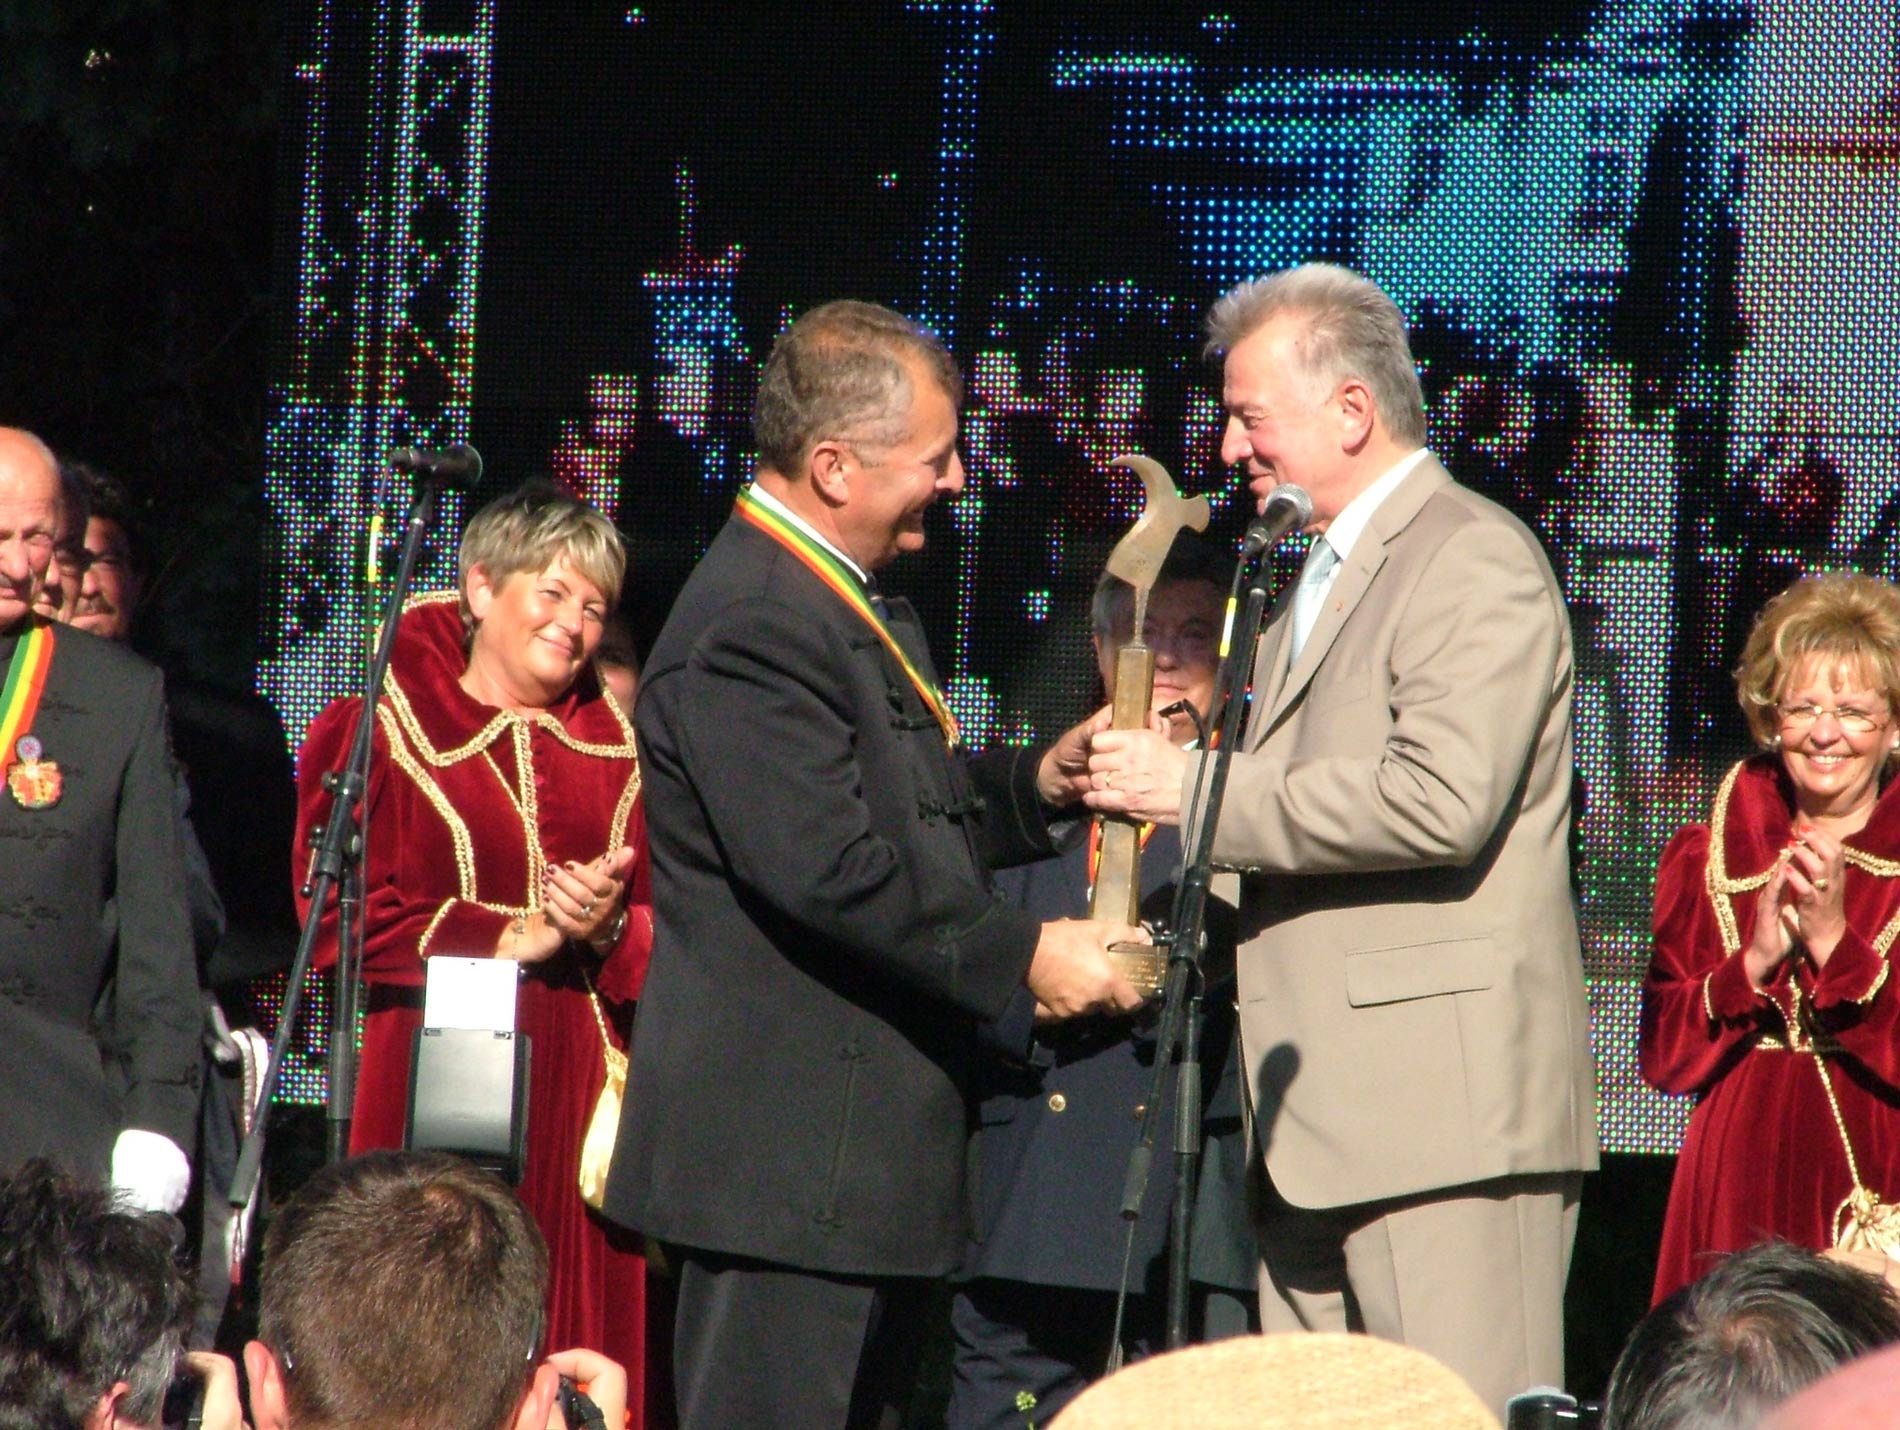 The Wine Grower of the Year in Eger